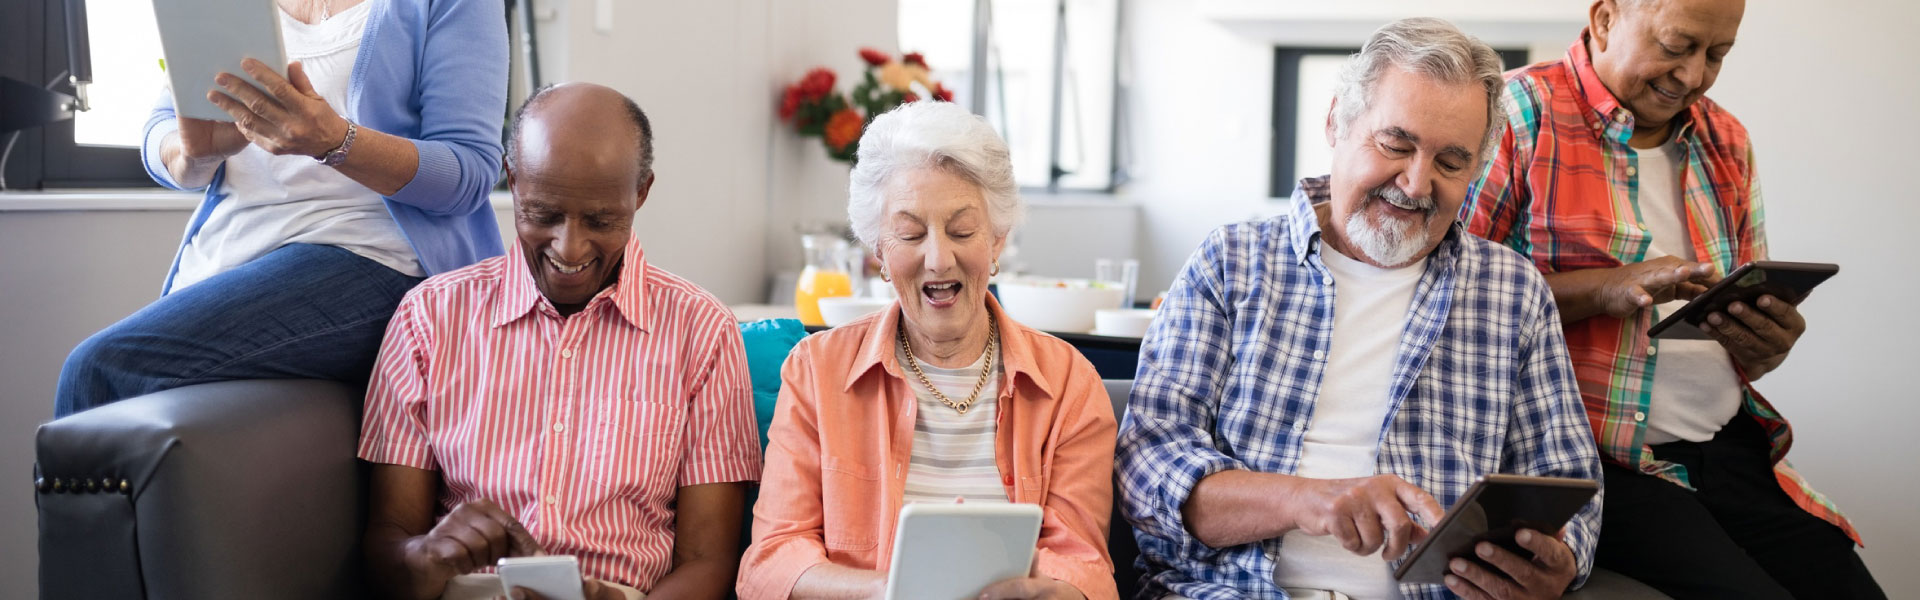 senior-net-learn-to-use-technology